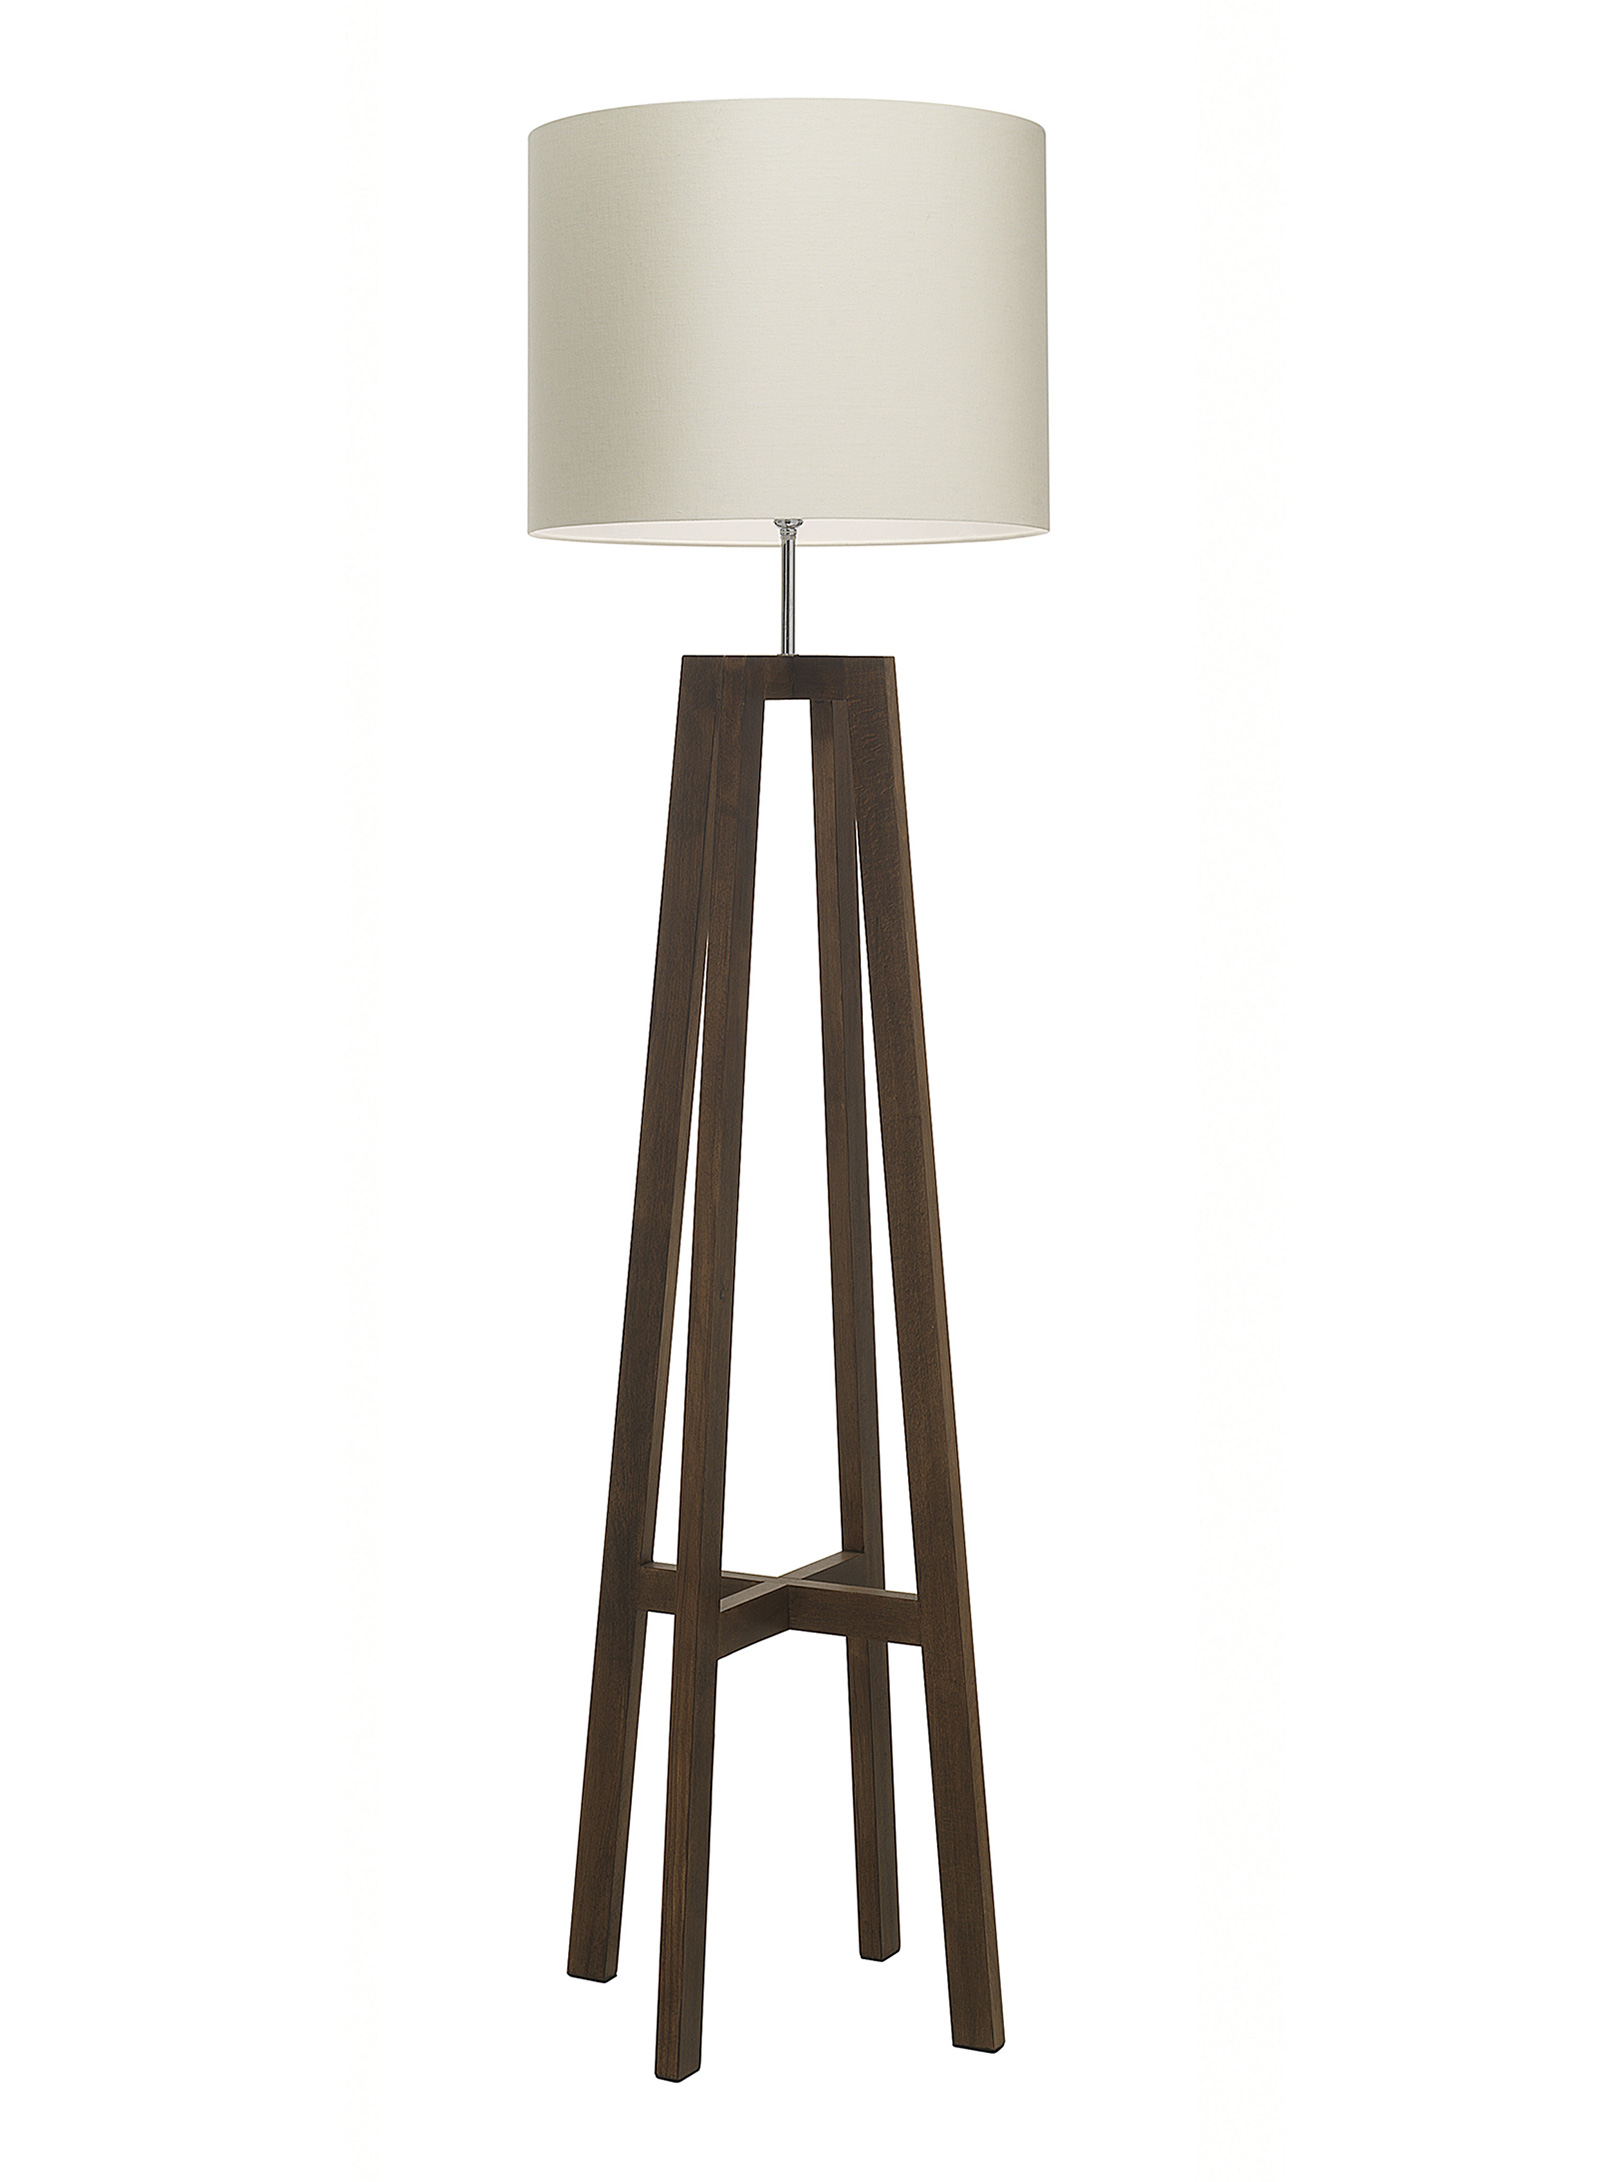 Tripod Wood Floor Lamp Enlighten Of Bath